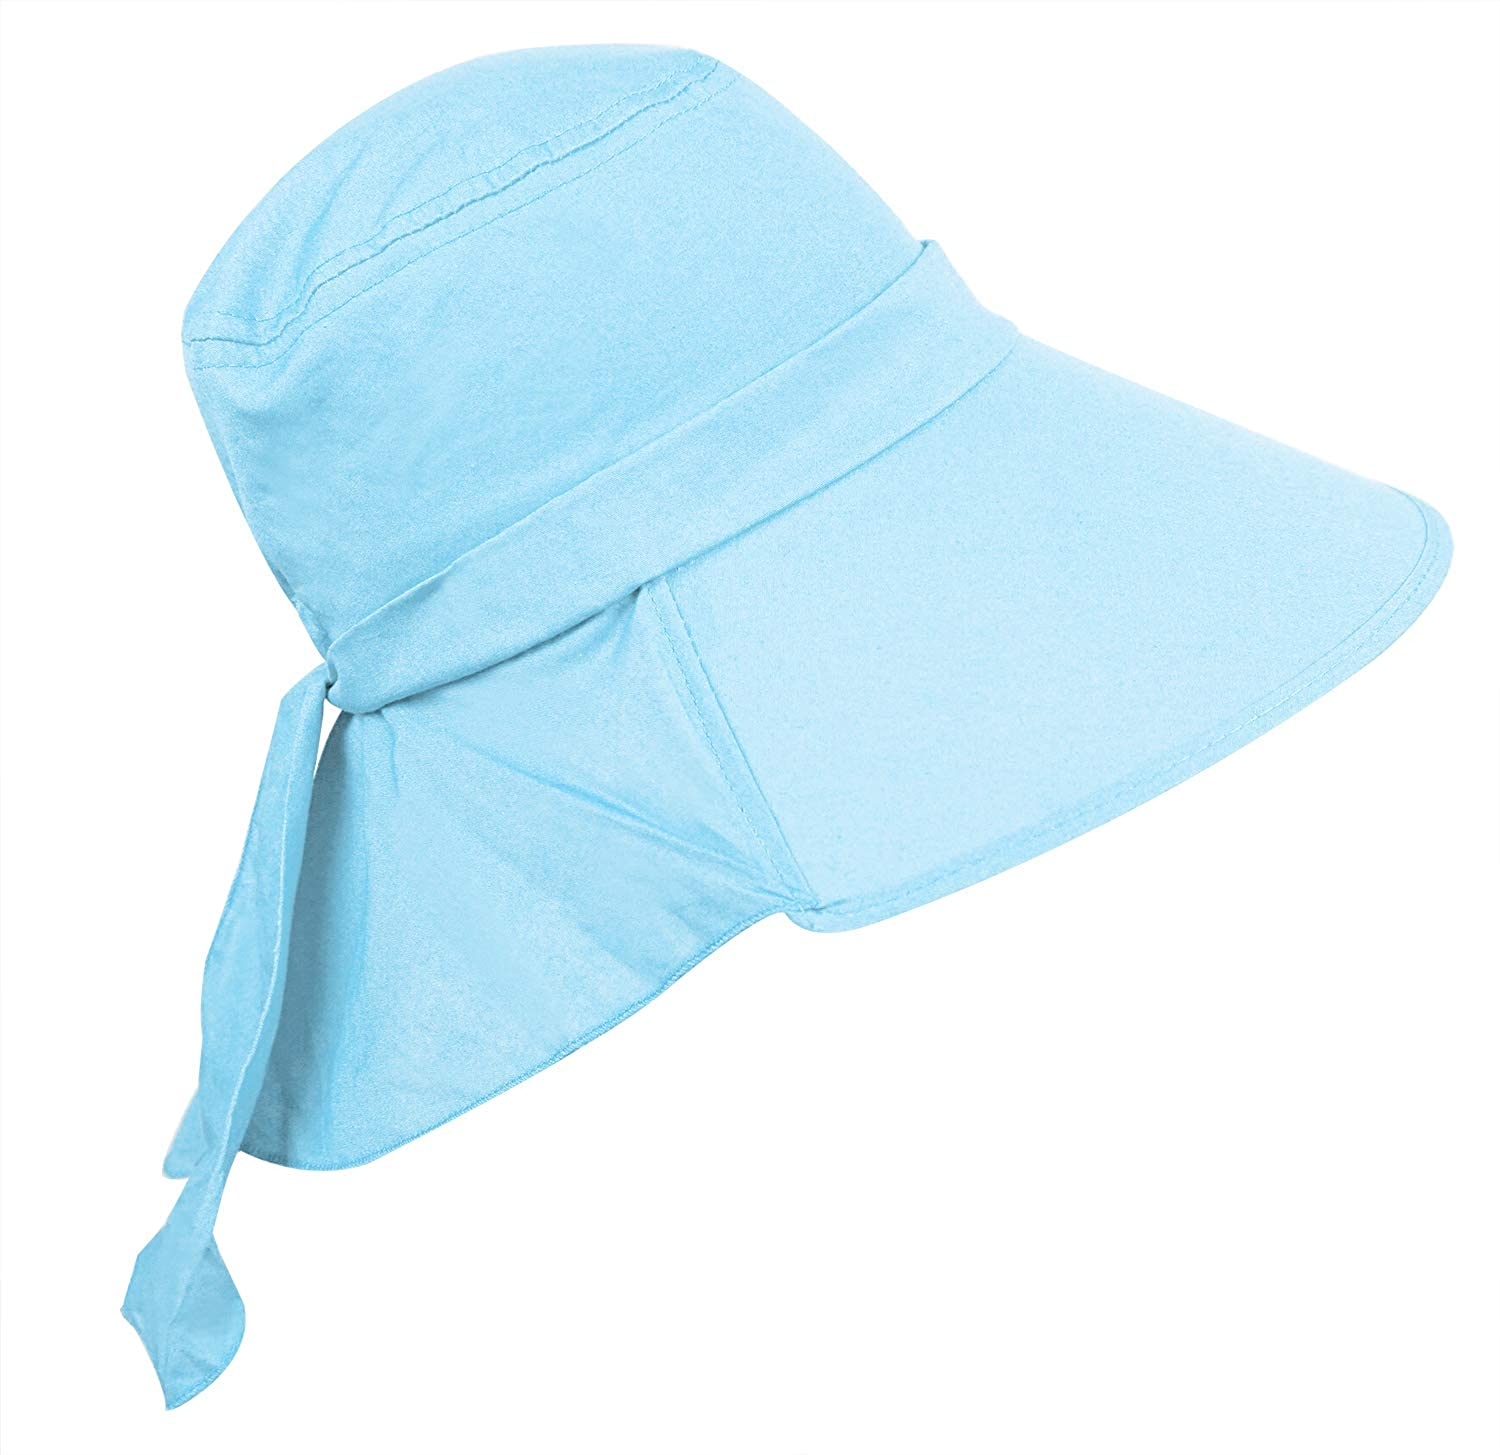 8430bfb6a Bienvenu Ladies Sun Visor Wide Large Brim Swimming Beach Sun Hat ...